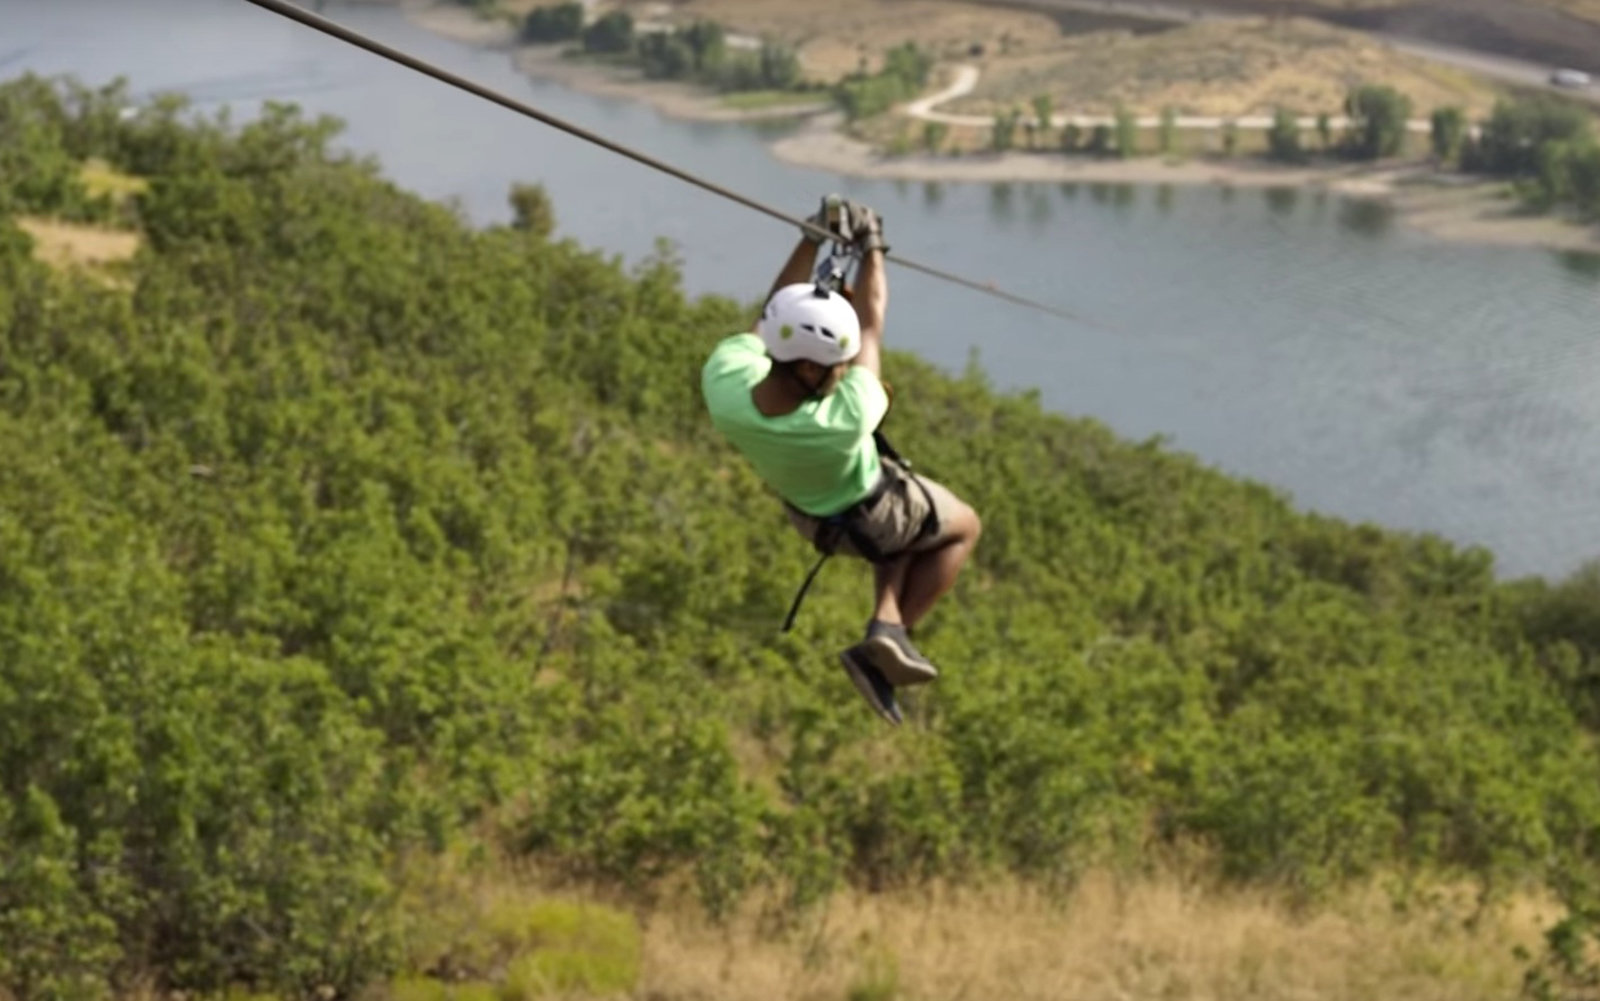 The Longest Zipline In The World Stretches More Than Two